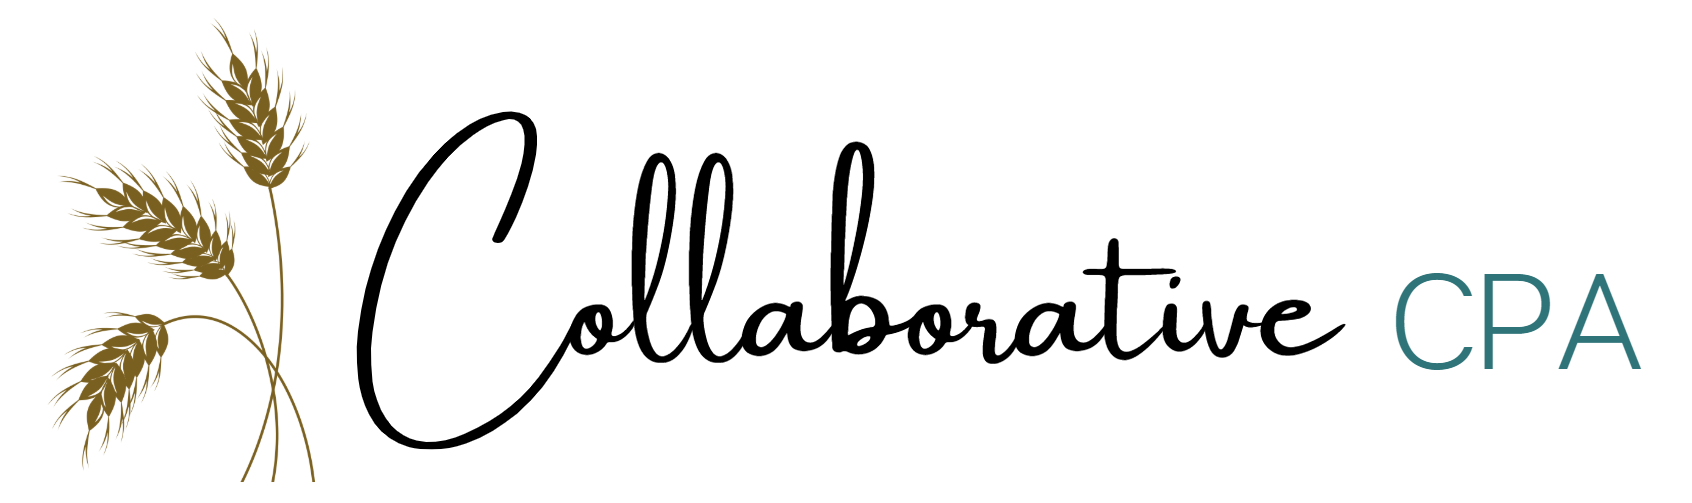 Collaborative CPA logo